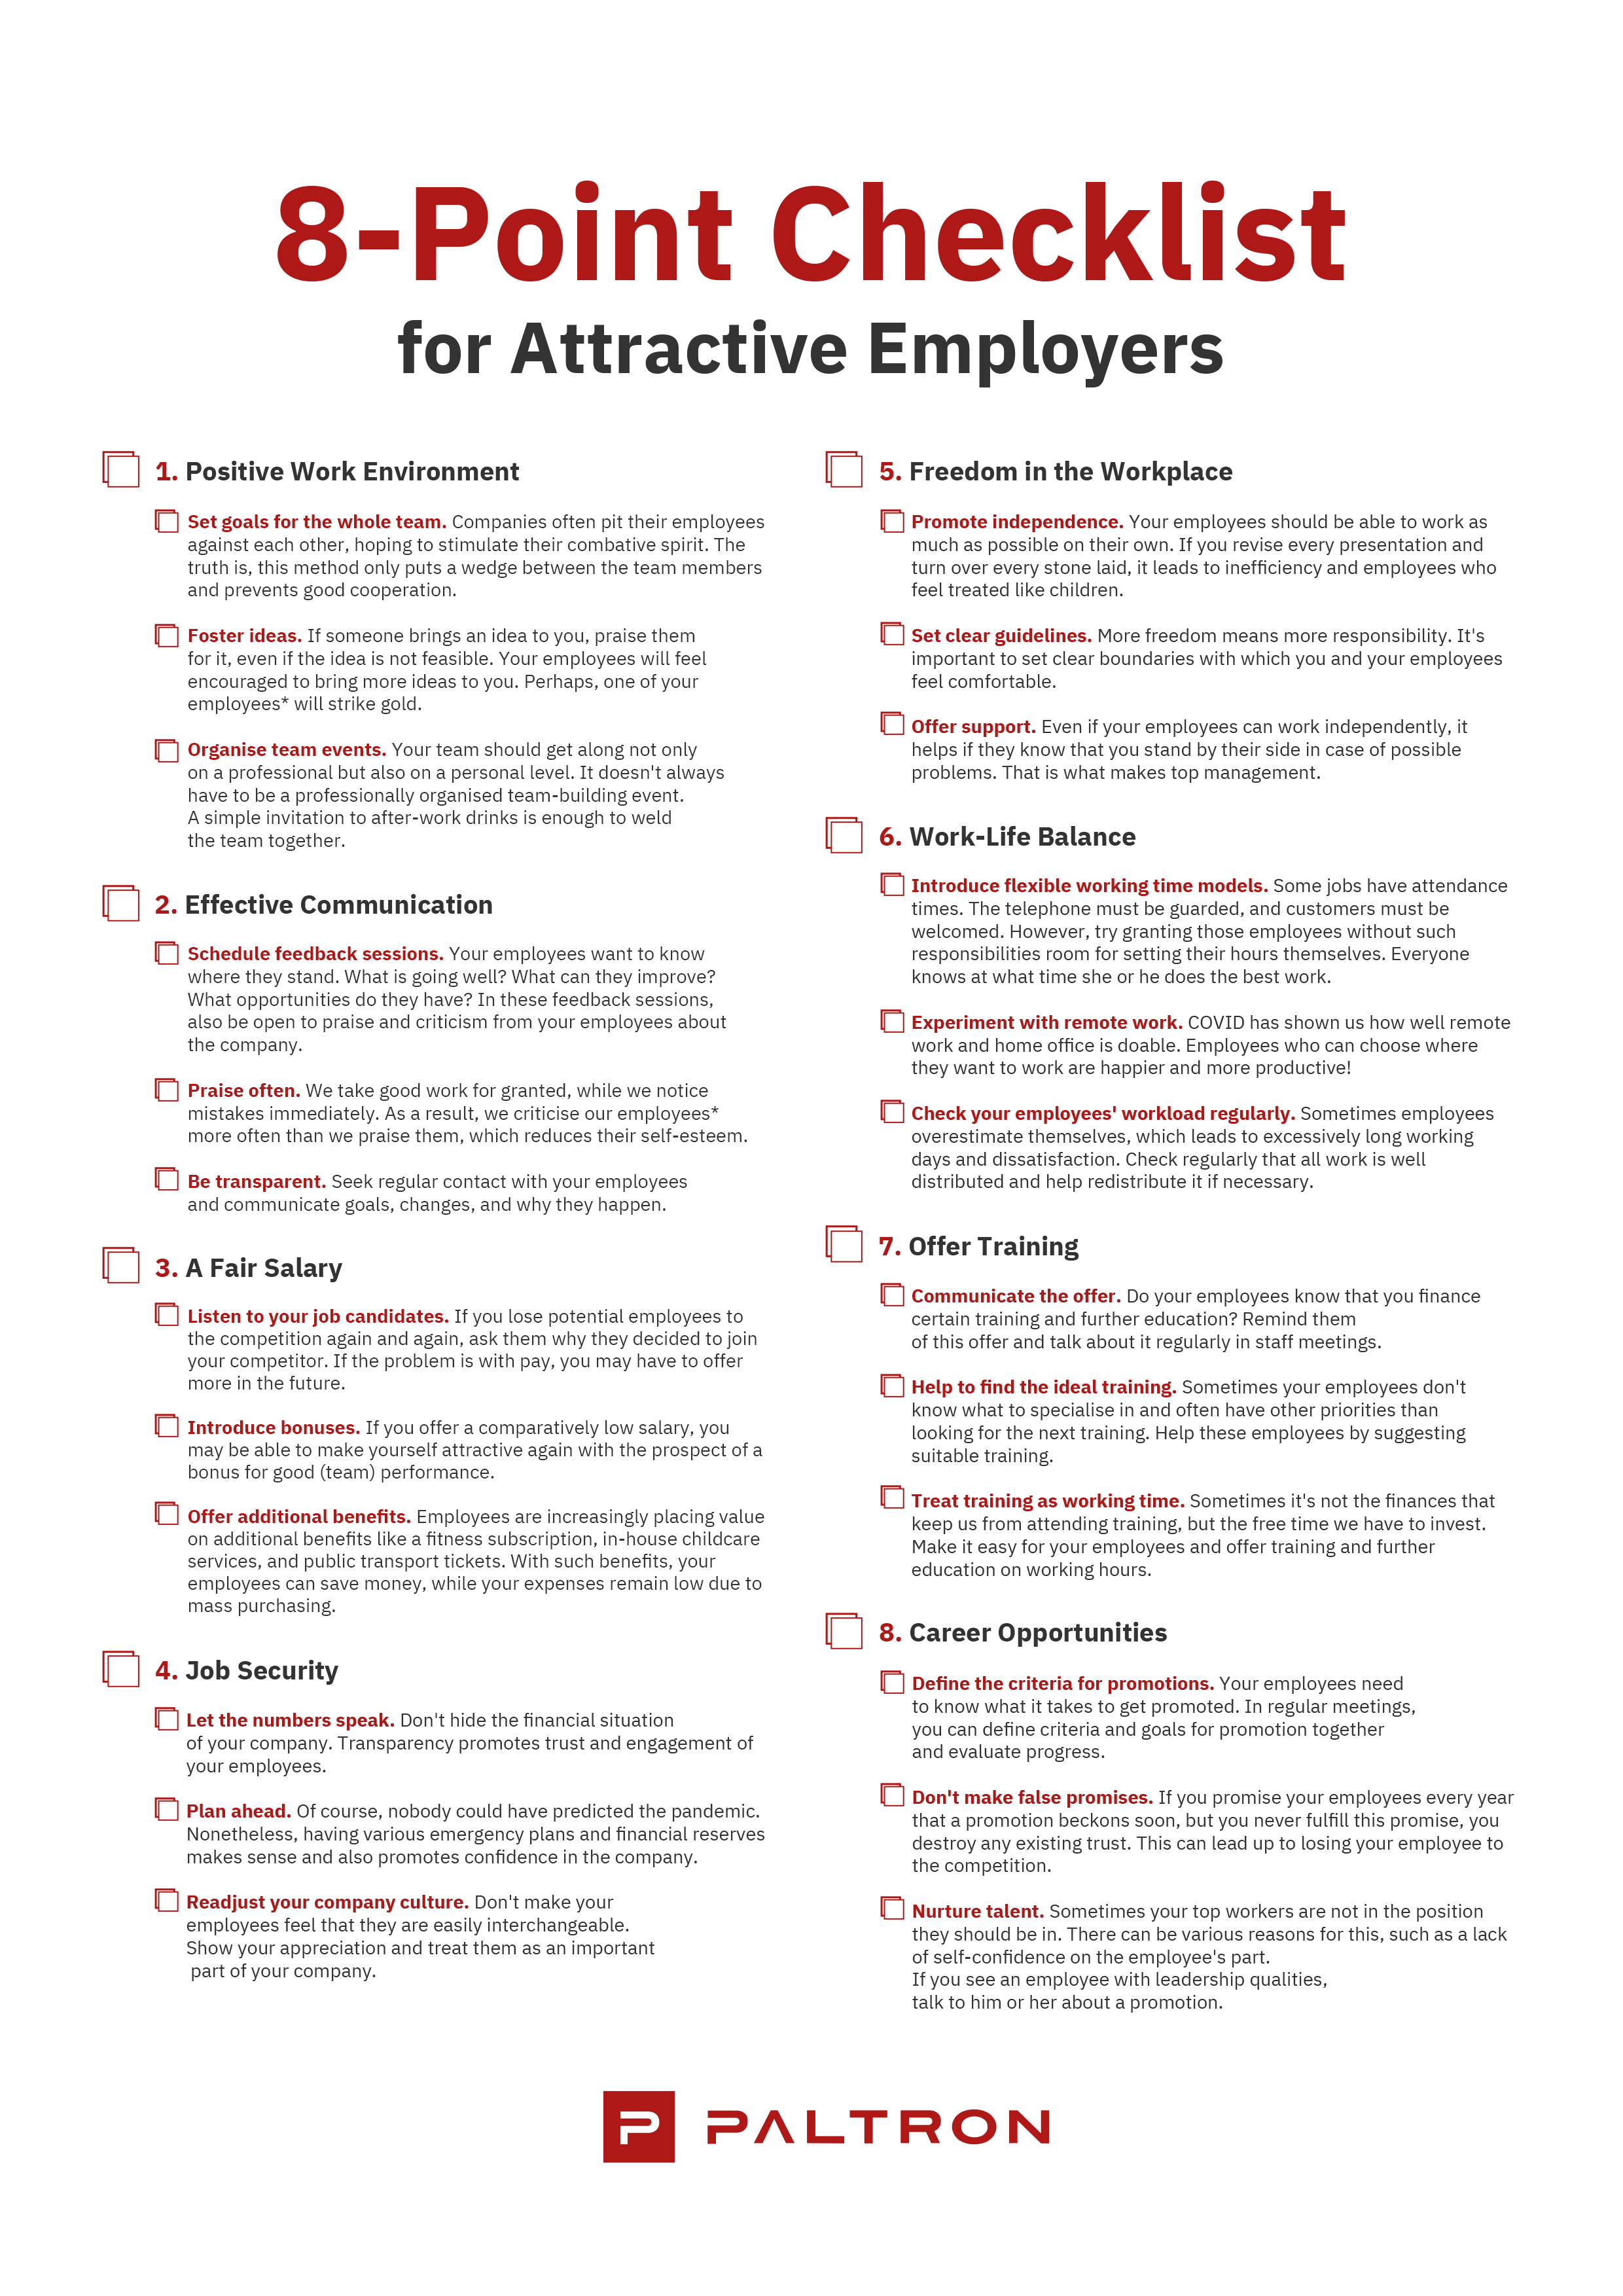 8-point checklist for attractive employers